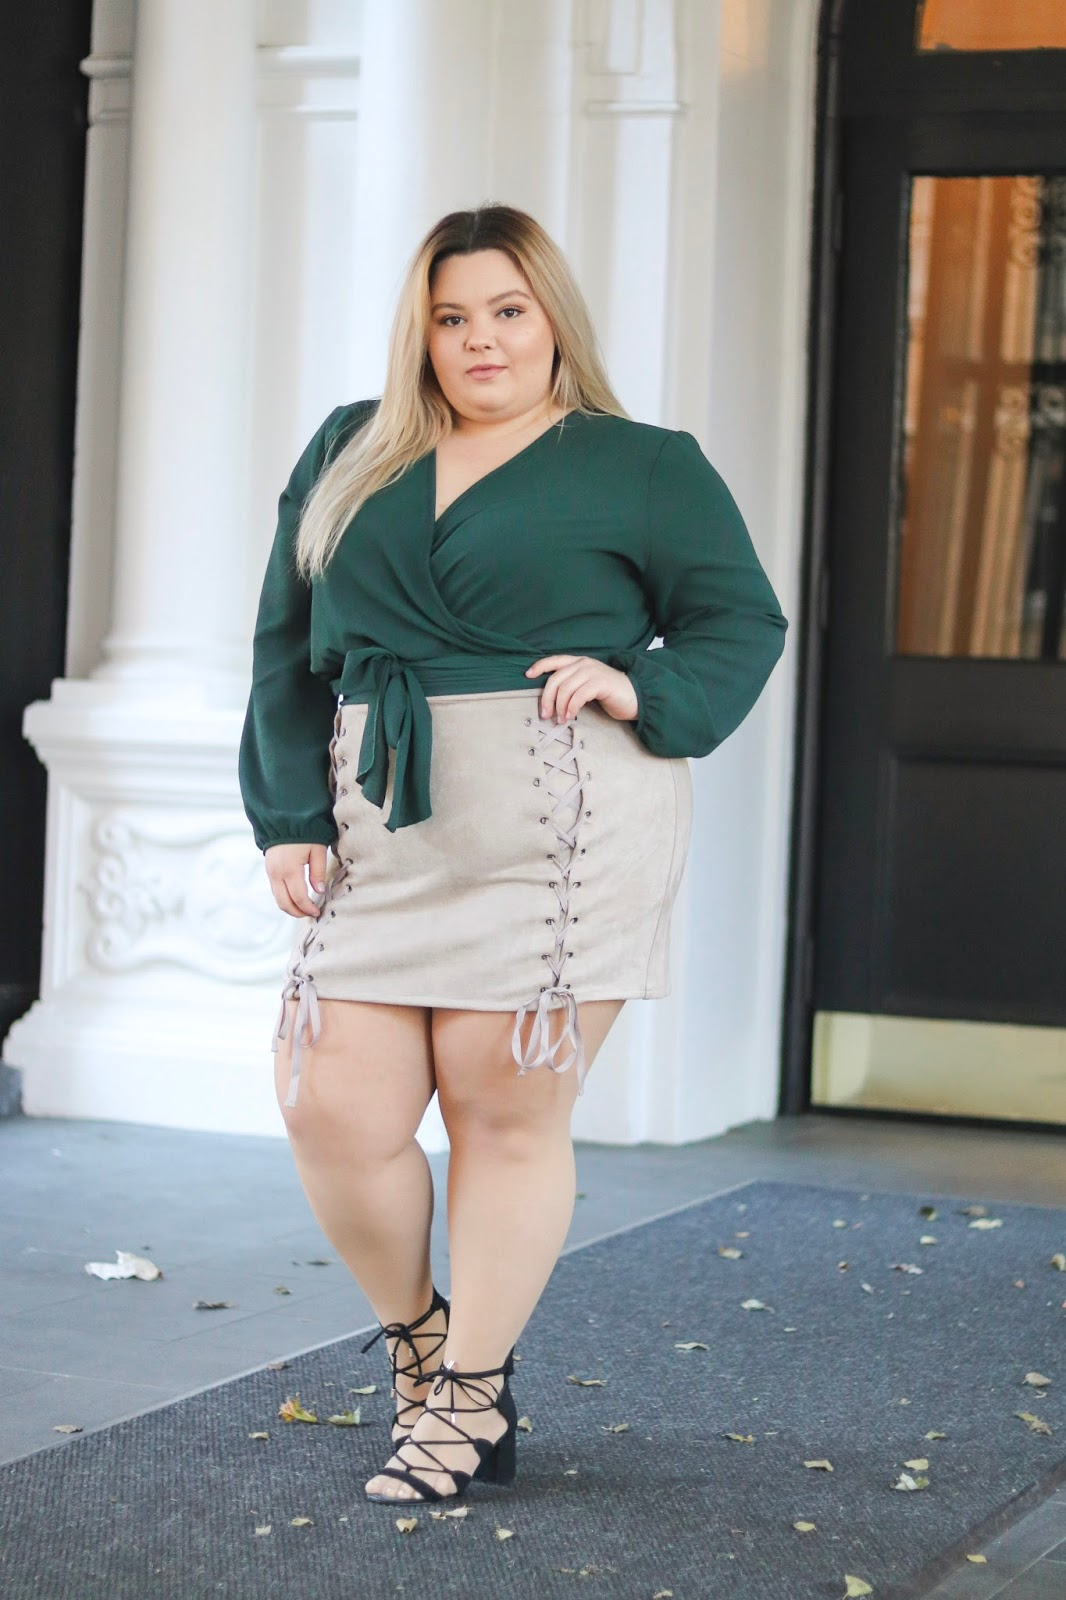 natalie in the city, natalie Craig, fashion nova curve, plus size confidence, curves and confidence, fat and confident, fashion nova, affordable plus size clothing, the school of womanly arts, the experience, Pussy: a reclamation, sexy plus size clothing, plus size lace up suede skirt, plus size wrap top, Chicago blogger, Windy City blogger, Chicago fashion, plus size fashion, plus size fashion blogger